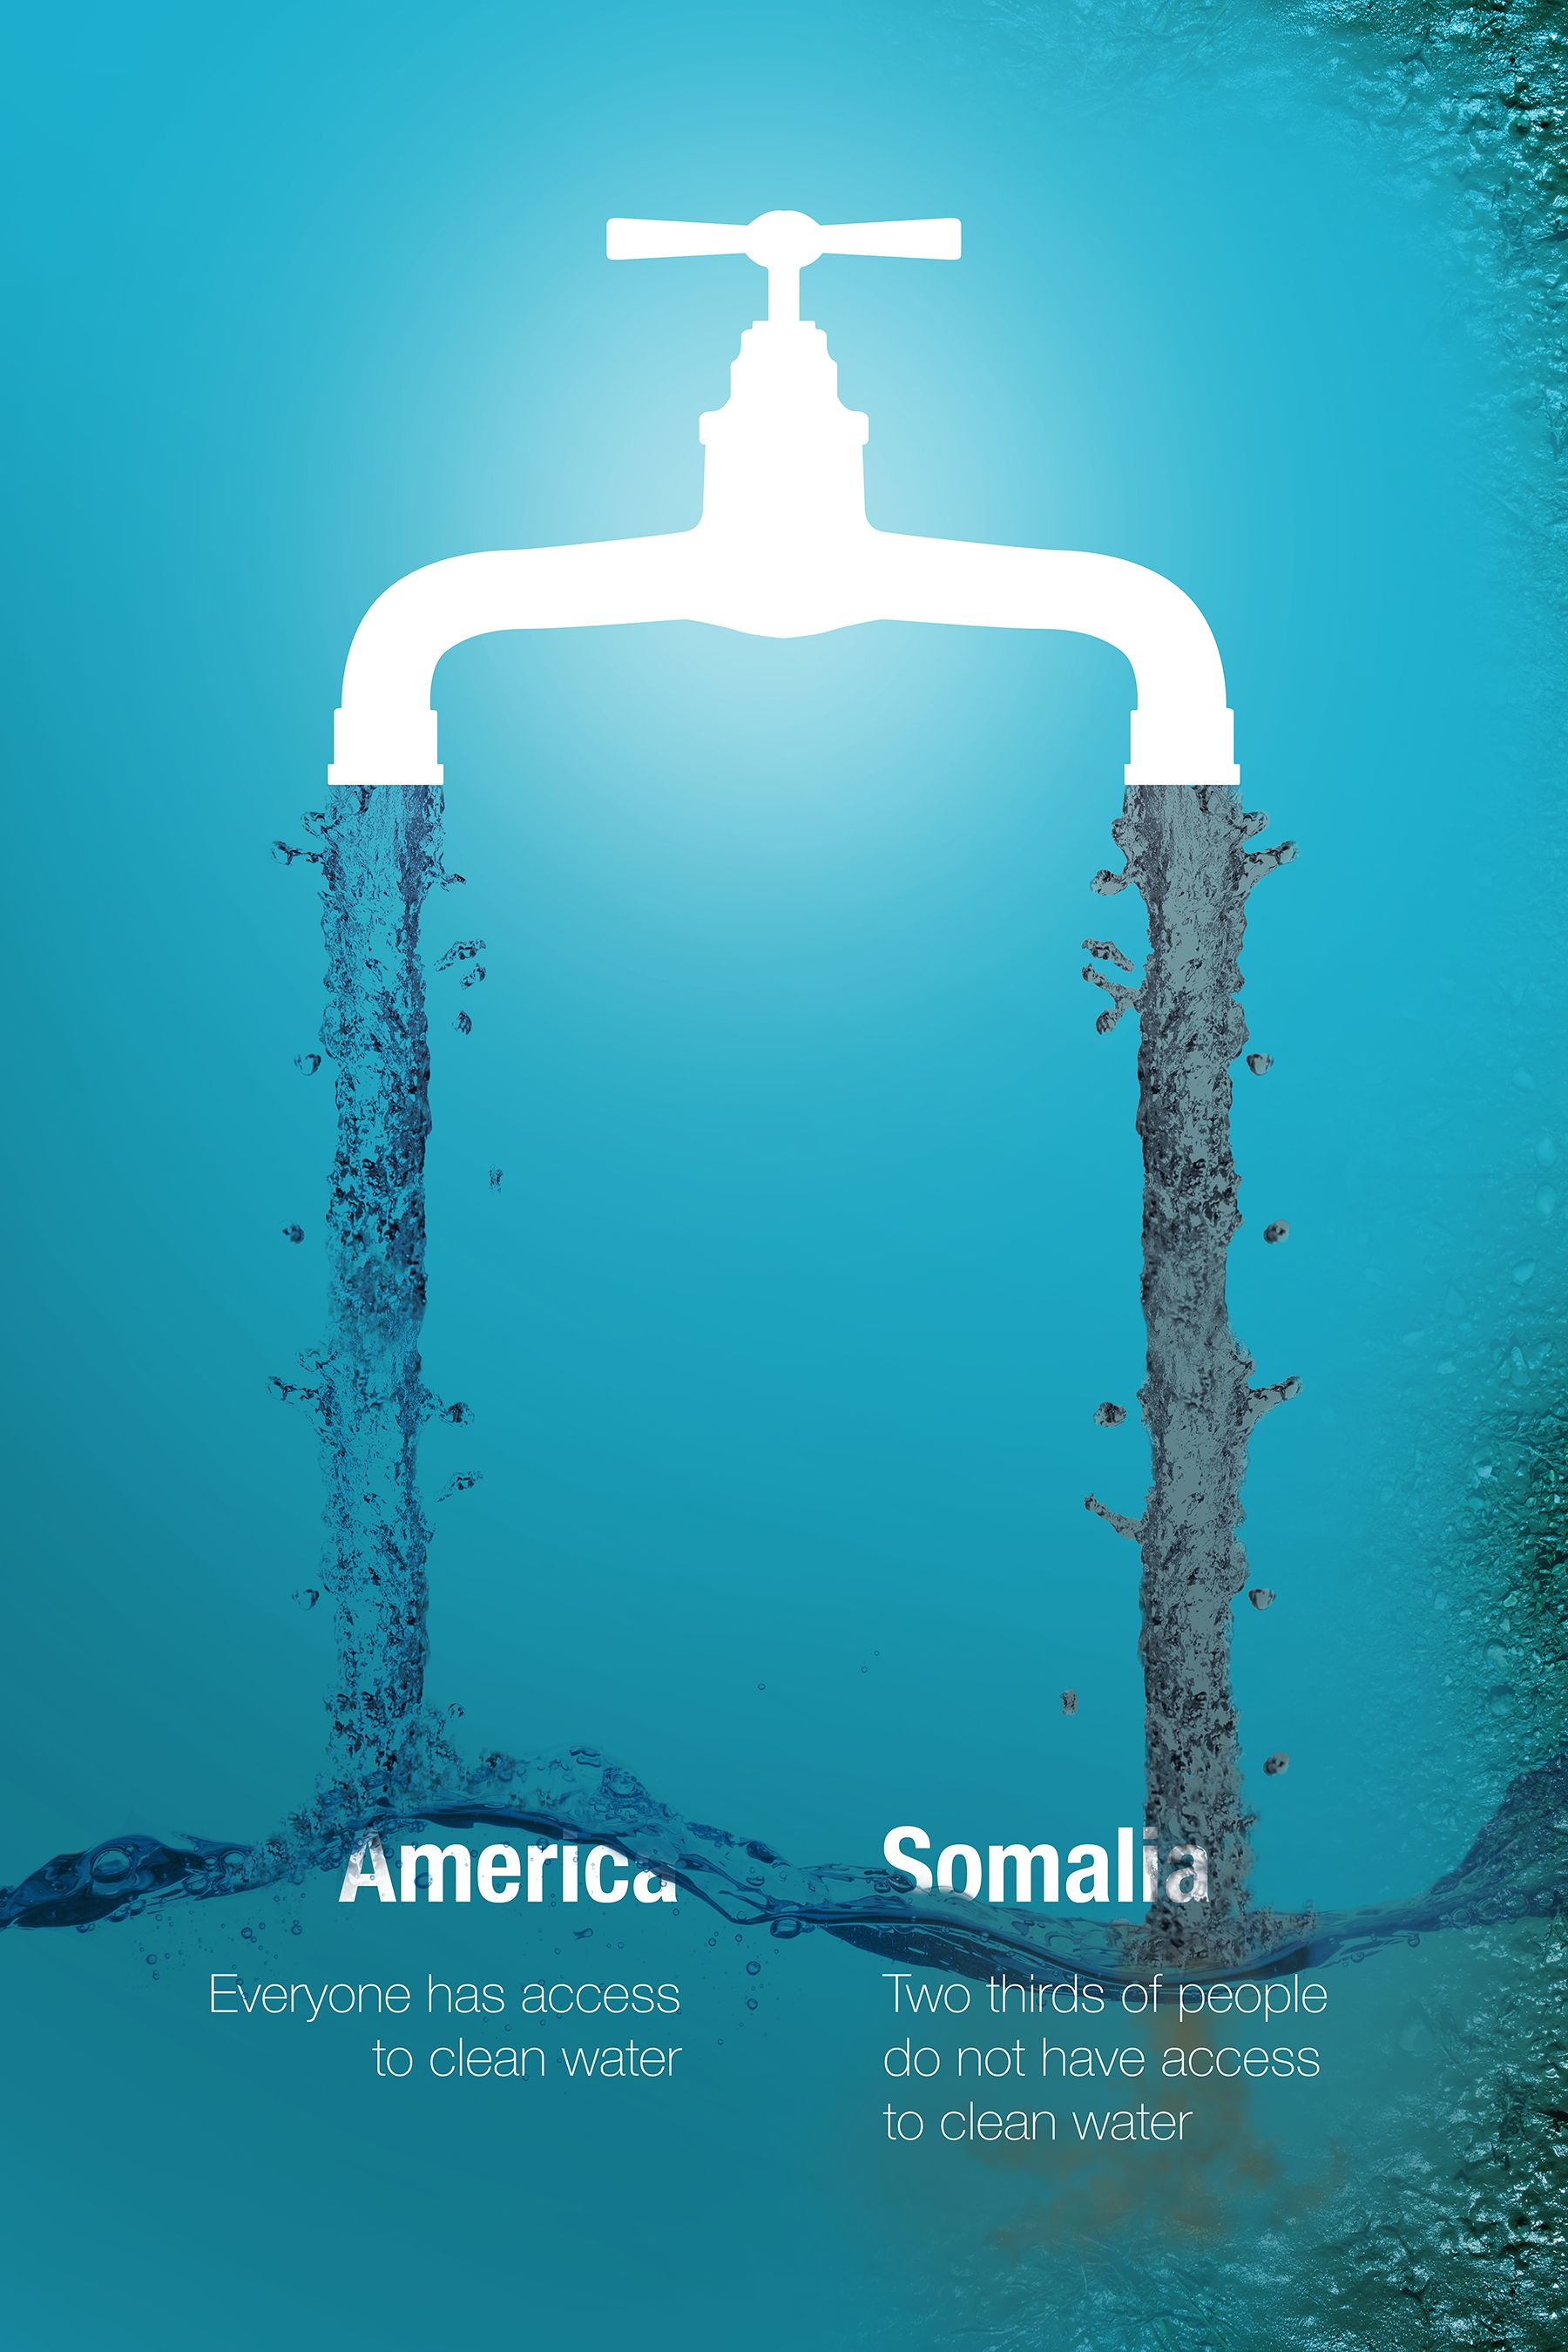 water posters ideas Google Search Water poster